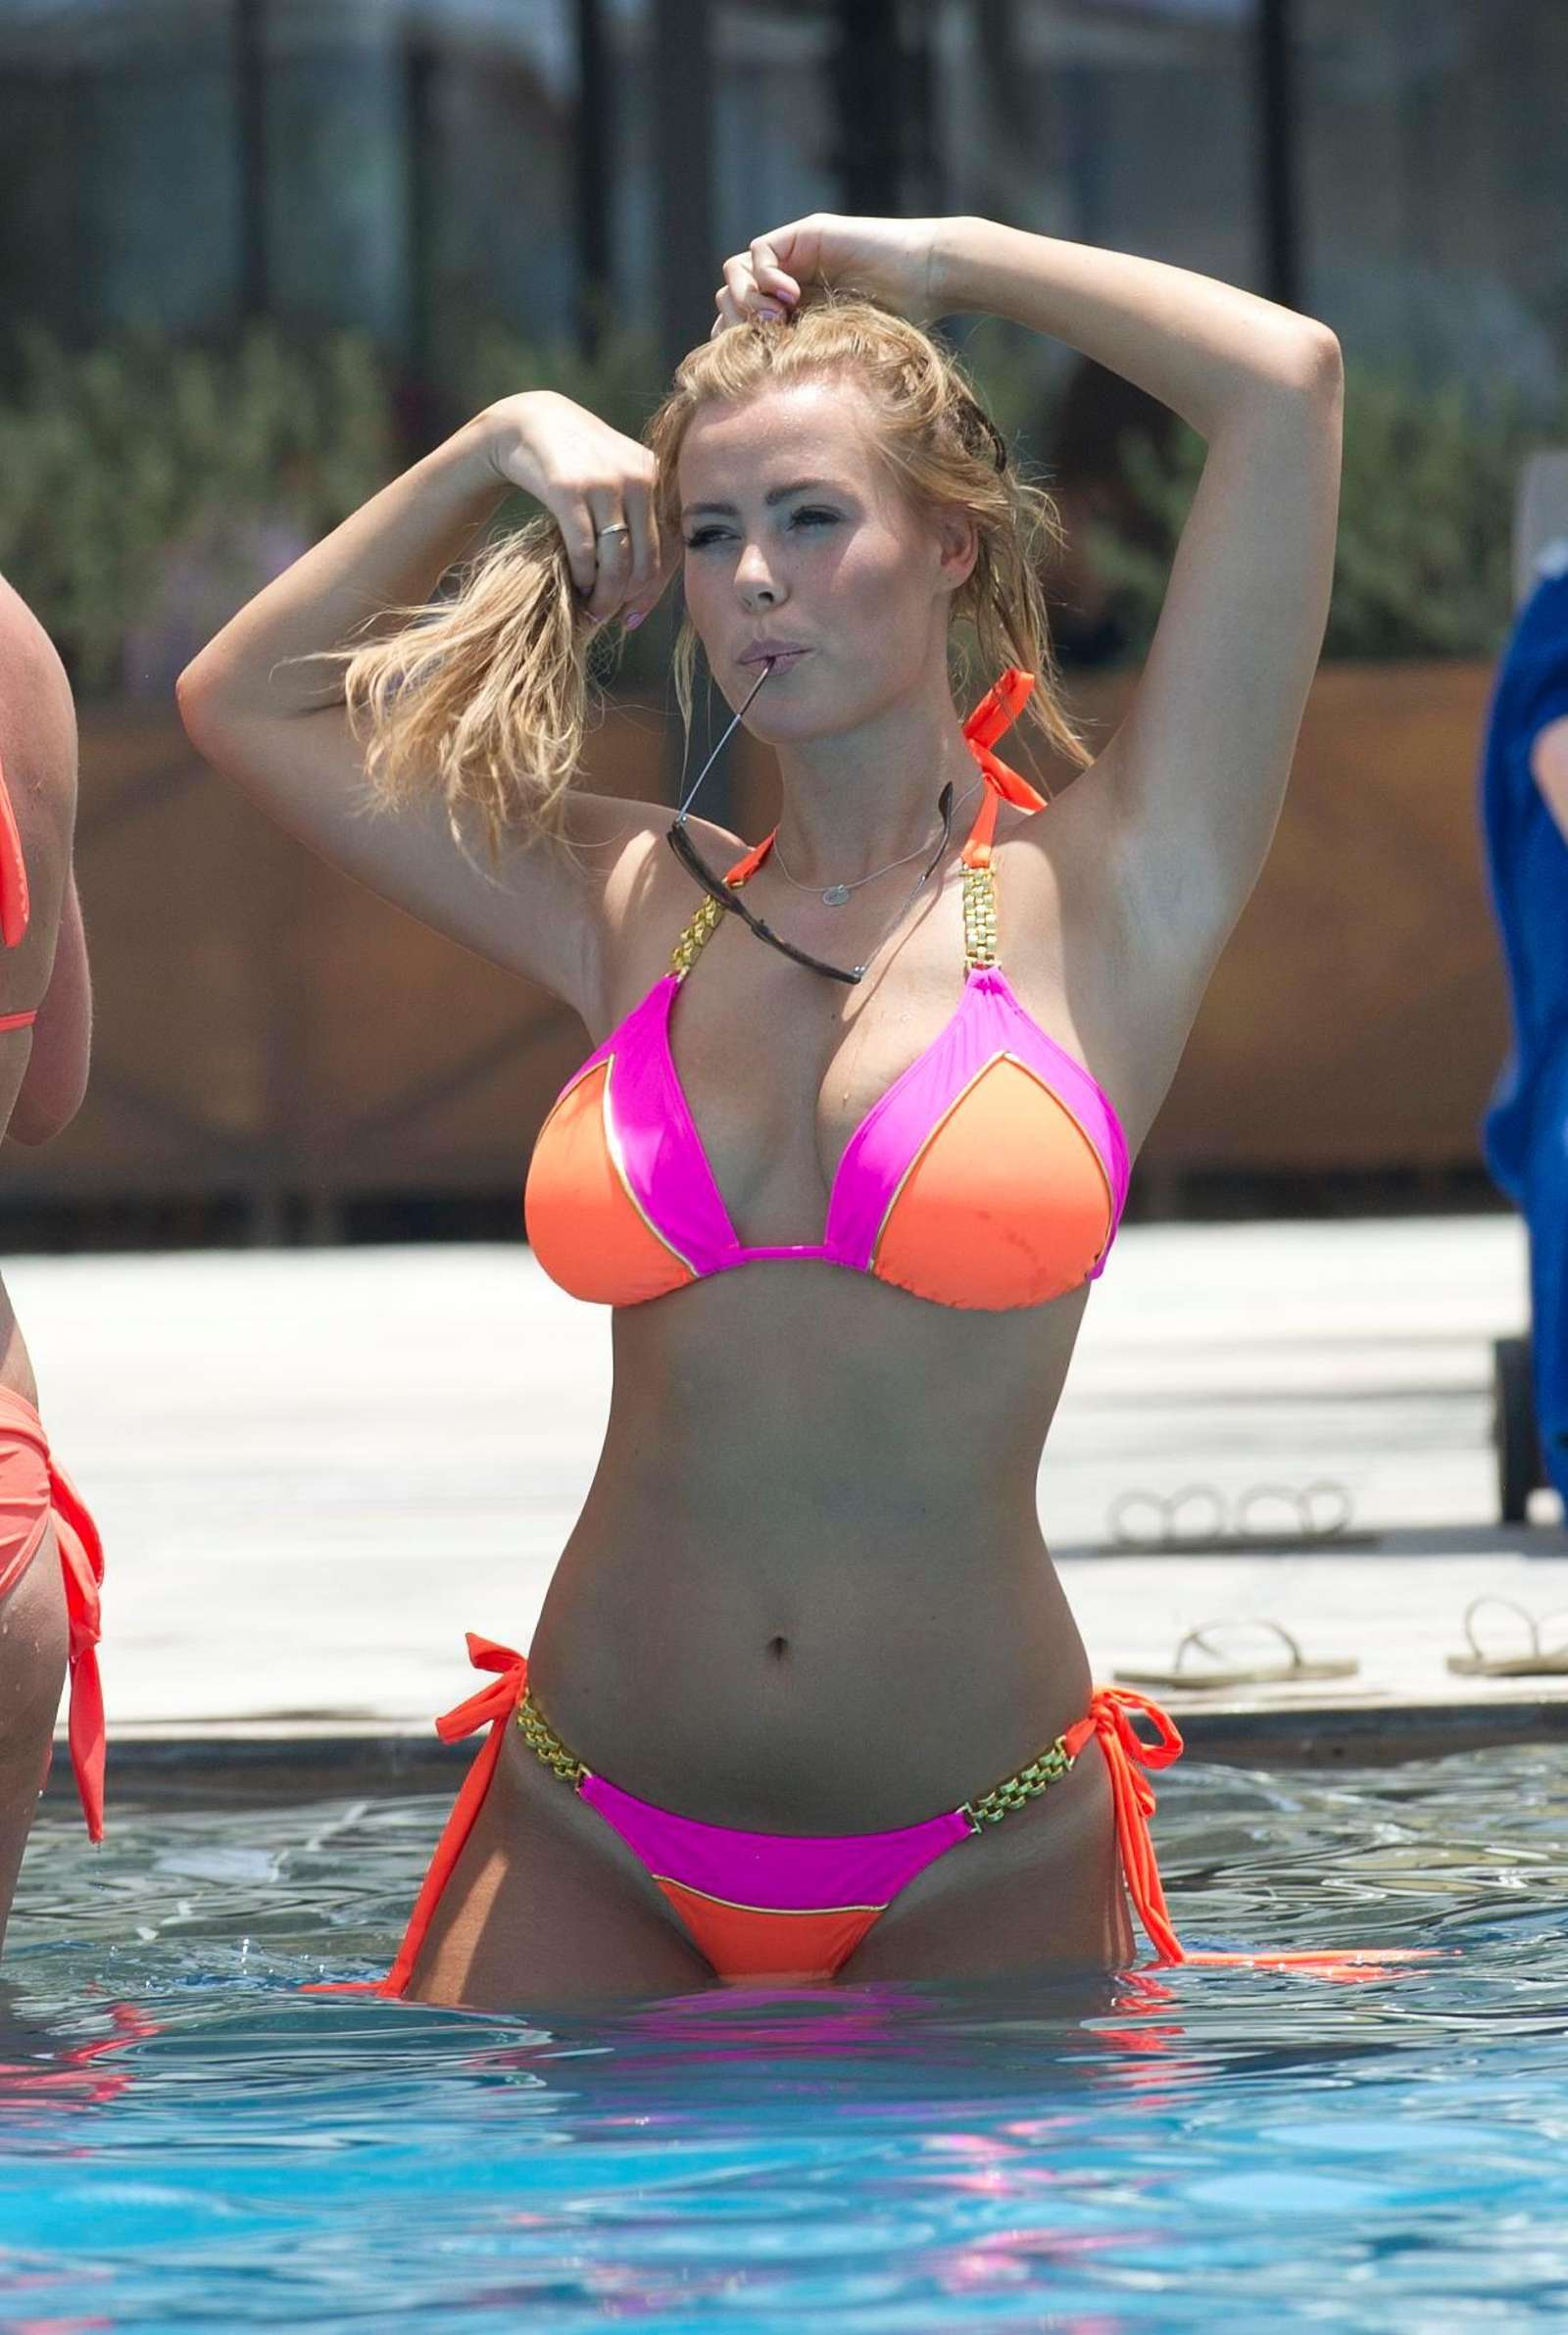 Chloe Meadows in Bikini at a pool in Dubai